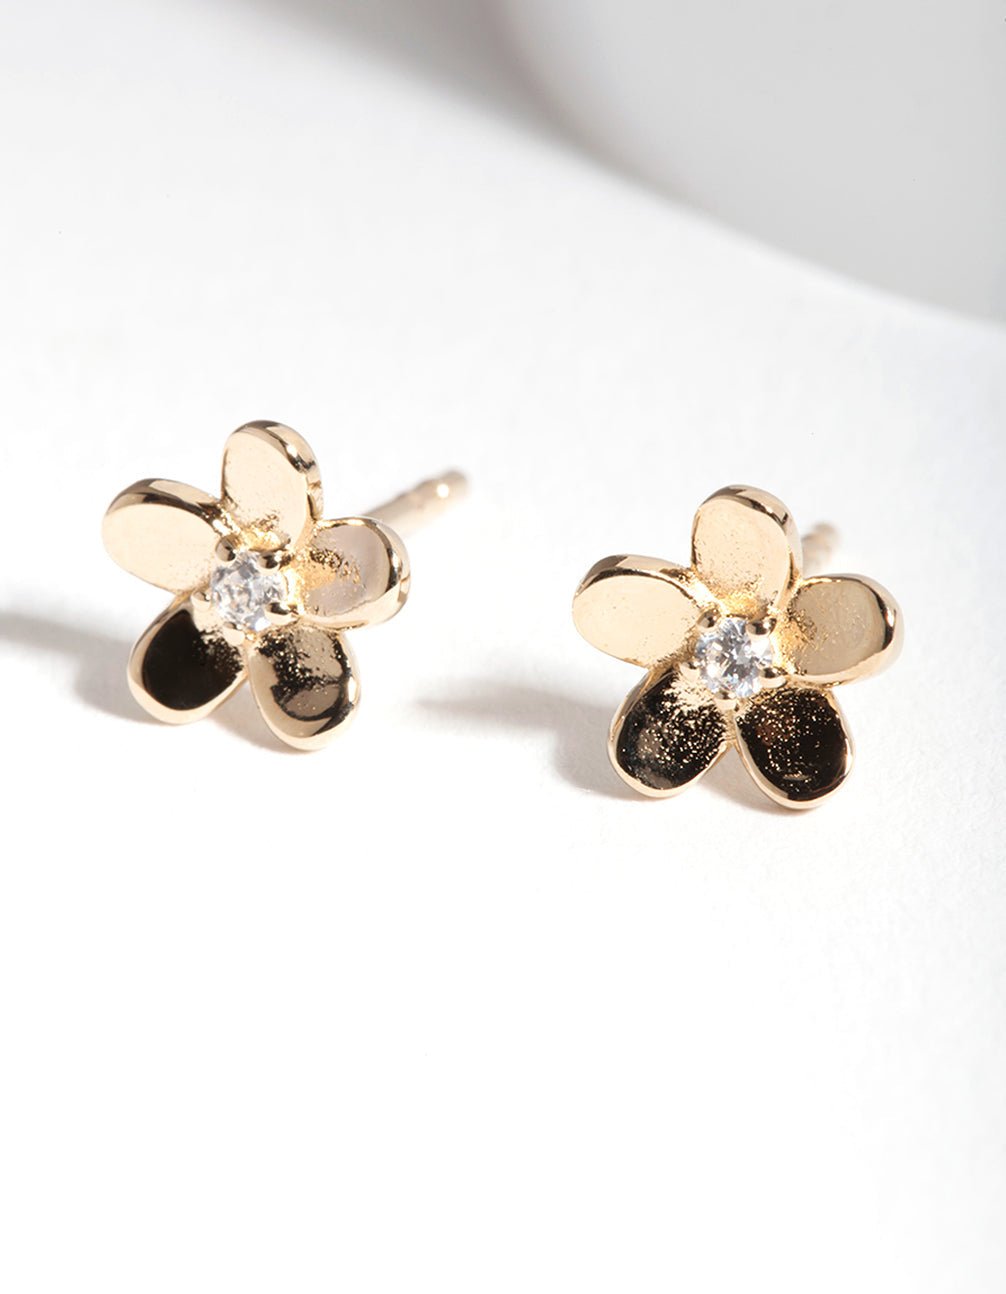 Gold Plated Sterling Silver Flower Cubic Zirconia Stud Earring